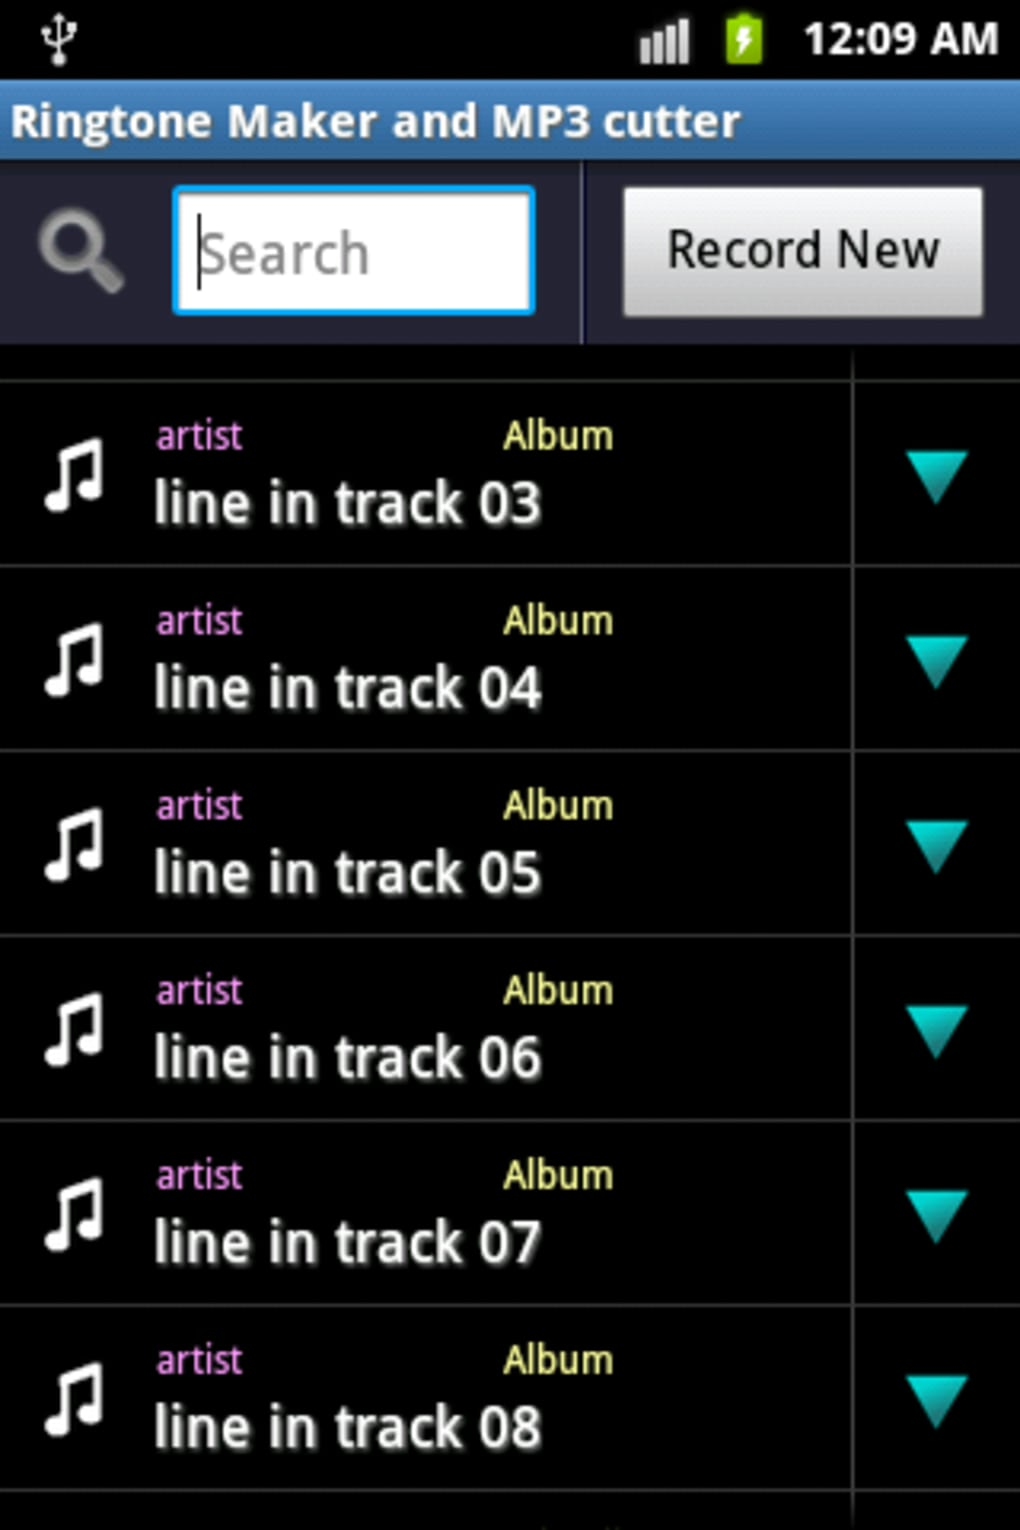 Ringtone Maker & MP3 Cutter APK for Android - Download